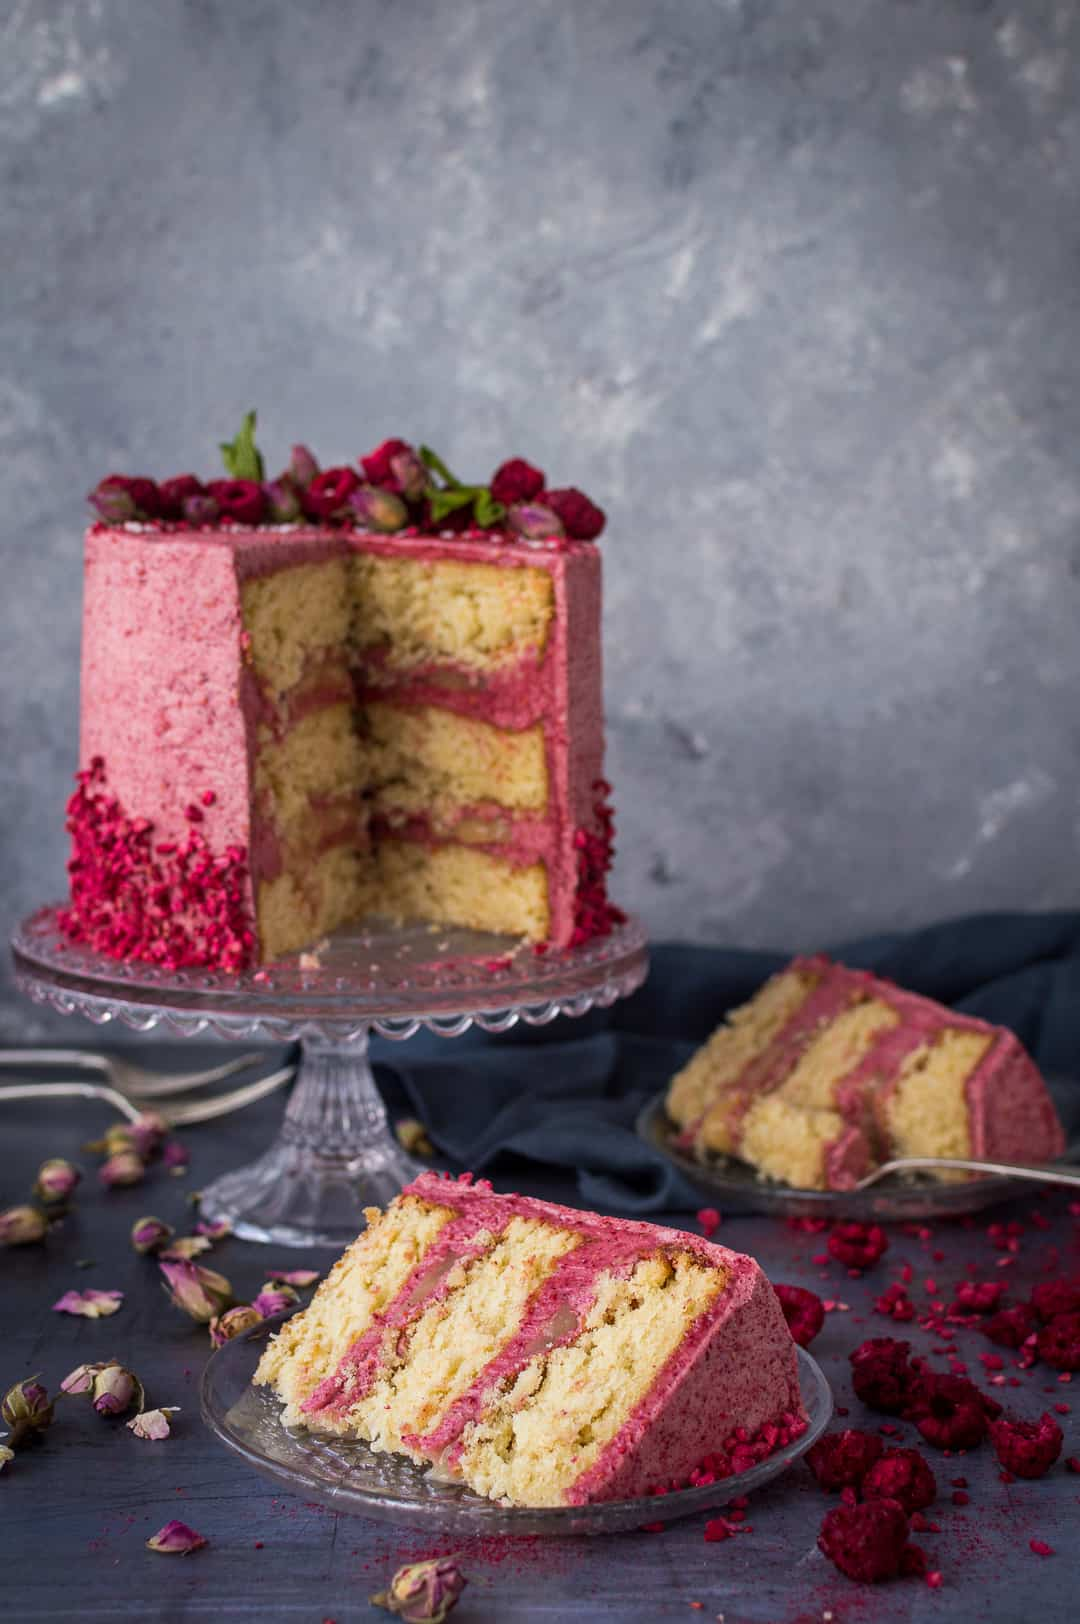 Sliced raspberry, coconut and lemon layer cake on a glass cake stand and grey background.